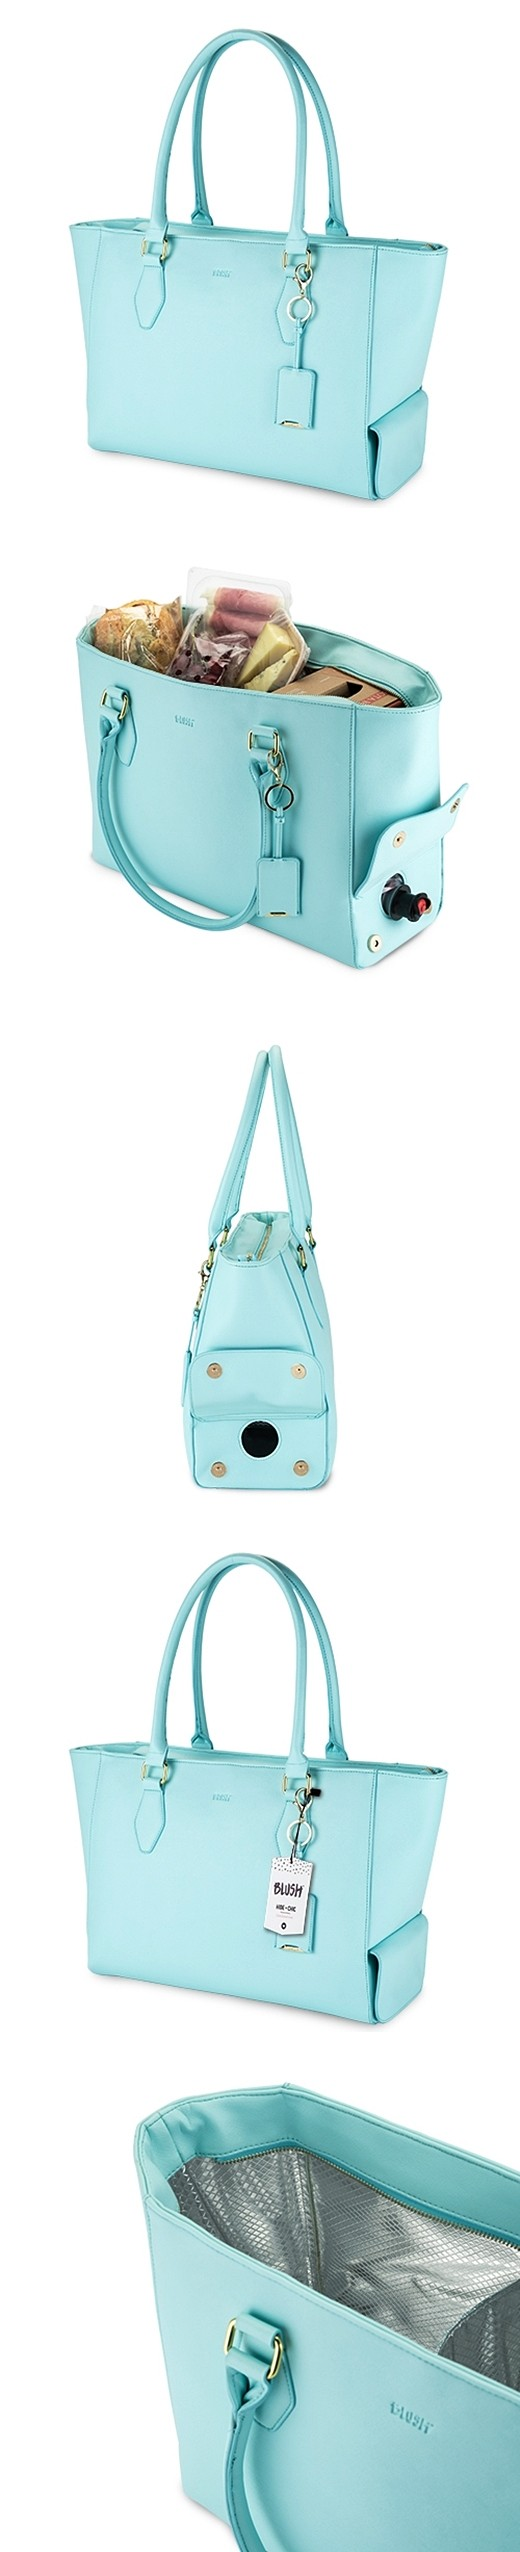 Aqua Insulated Wine Purse Tote with Bottle Opener Keychain by Blush